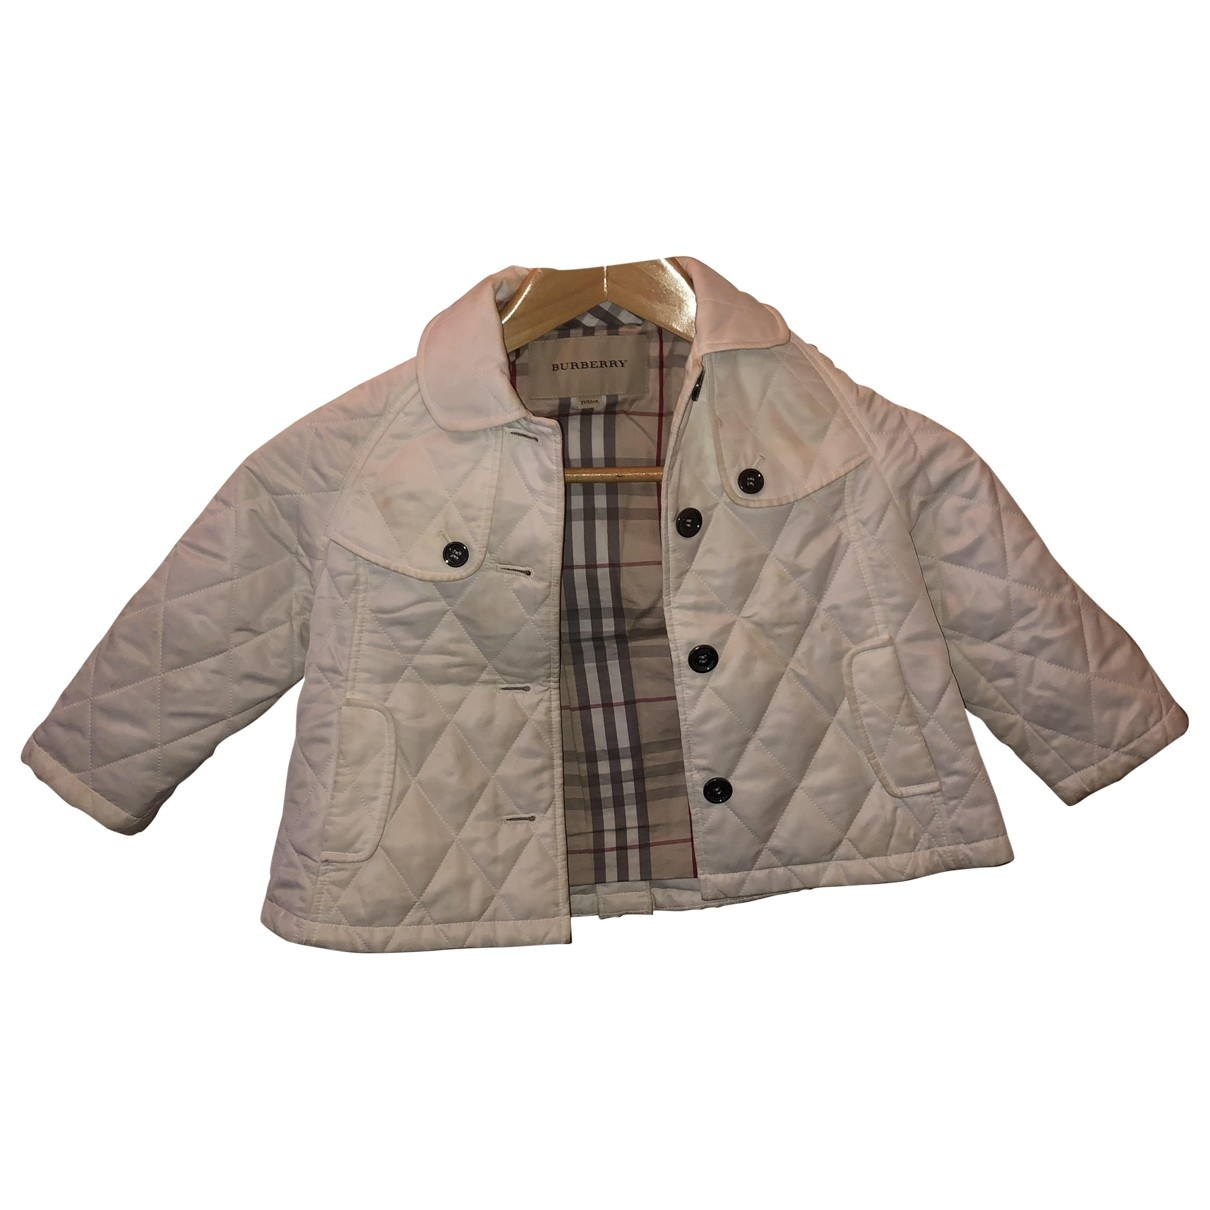 Burberry \N White Cotton jacket & coat for Kids 2 years - up to 86cm FR